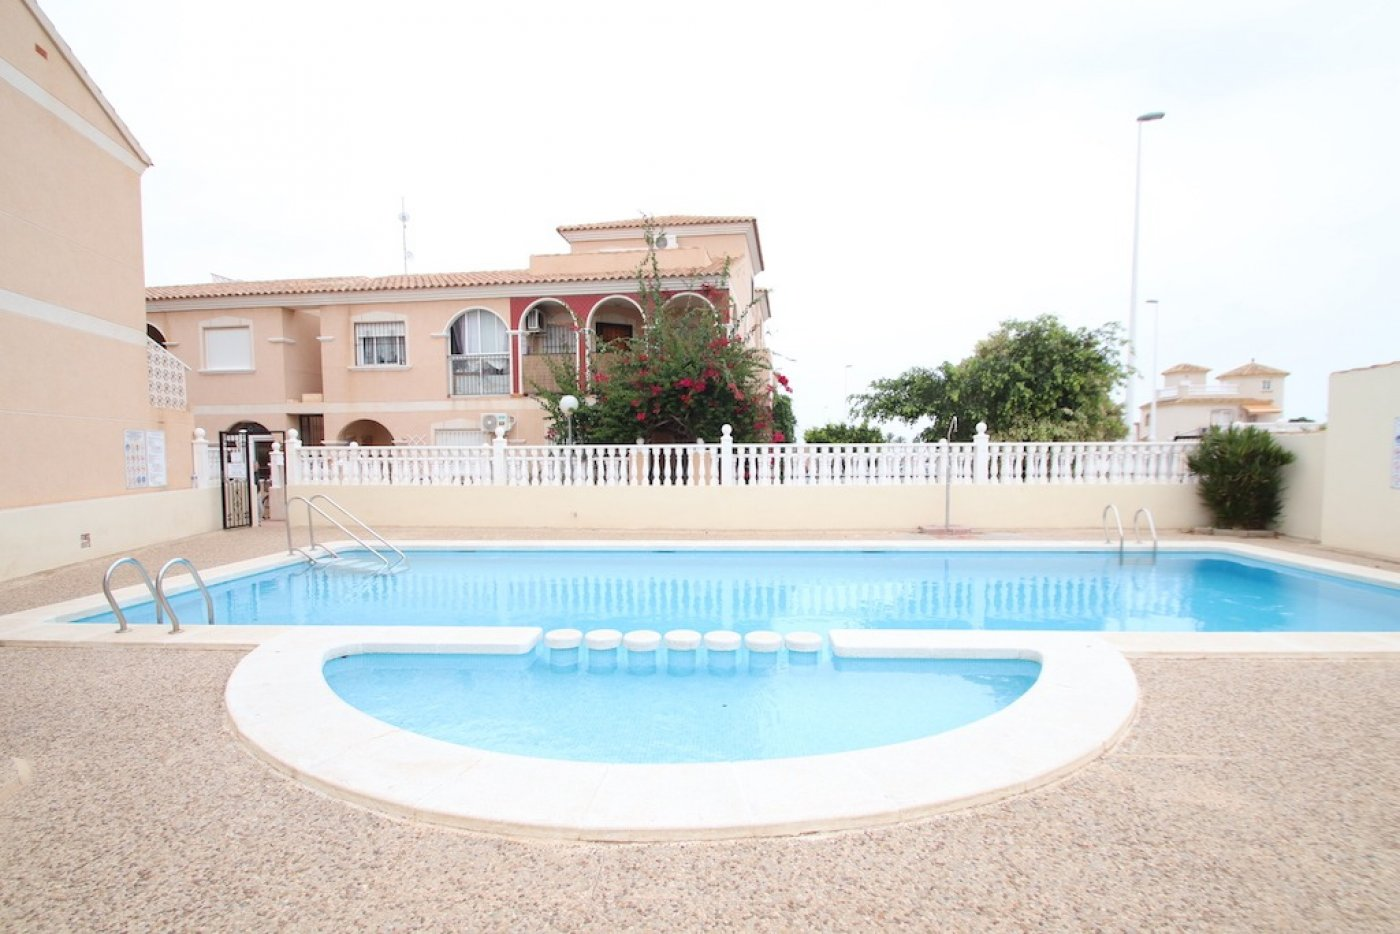 ground-floor en orihuela-costa · la-zenia 115000€